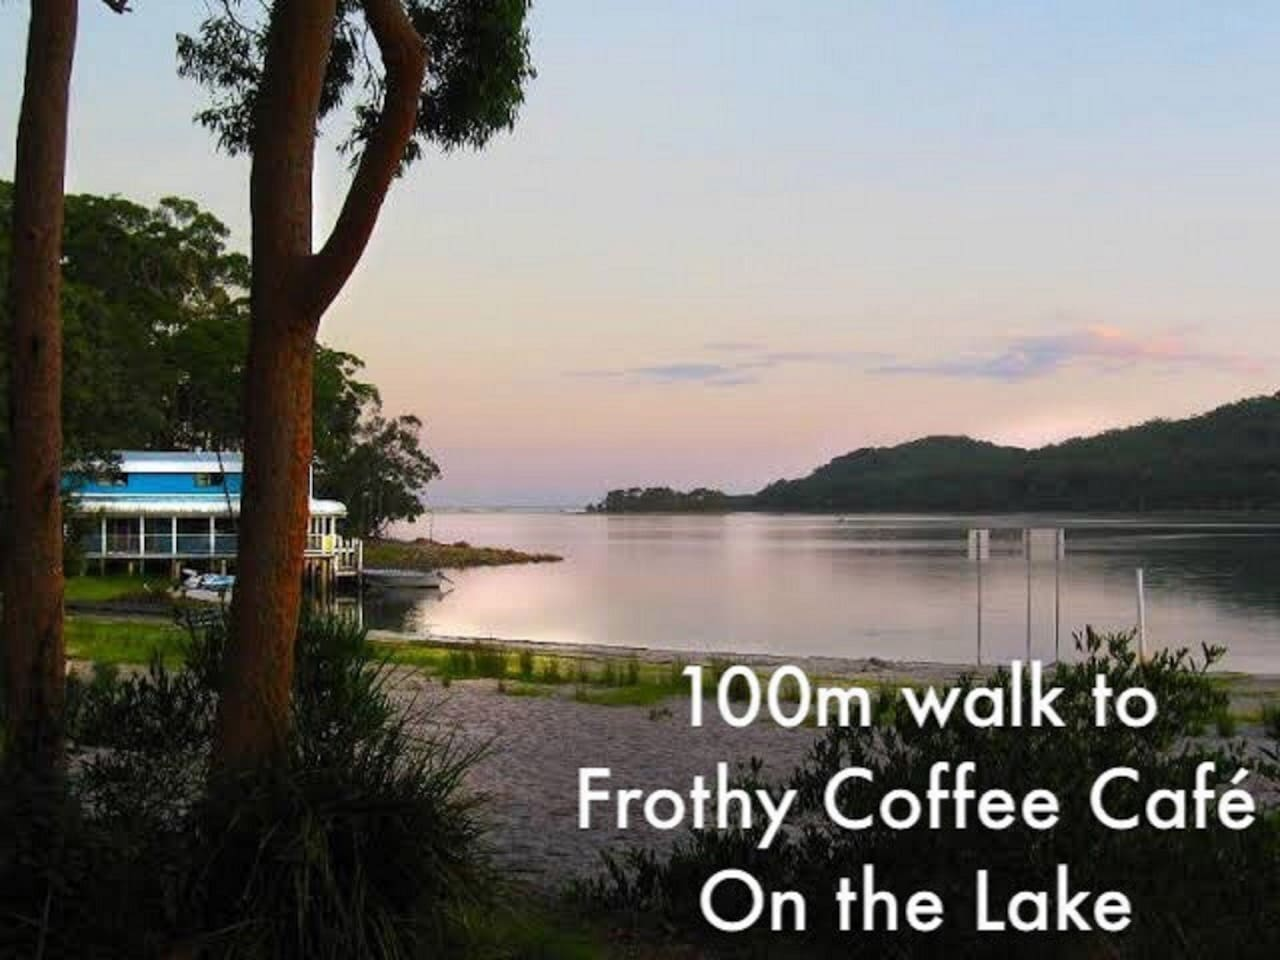 Frothy Coffee Cafe